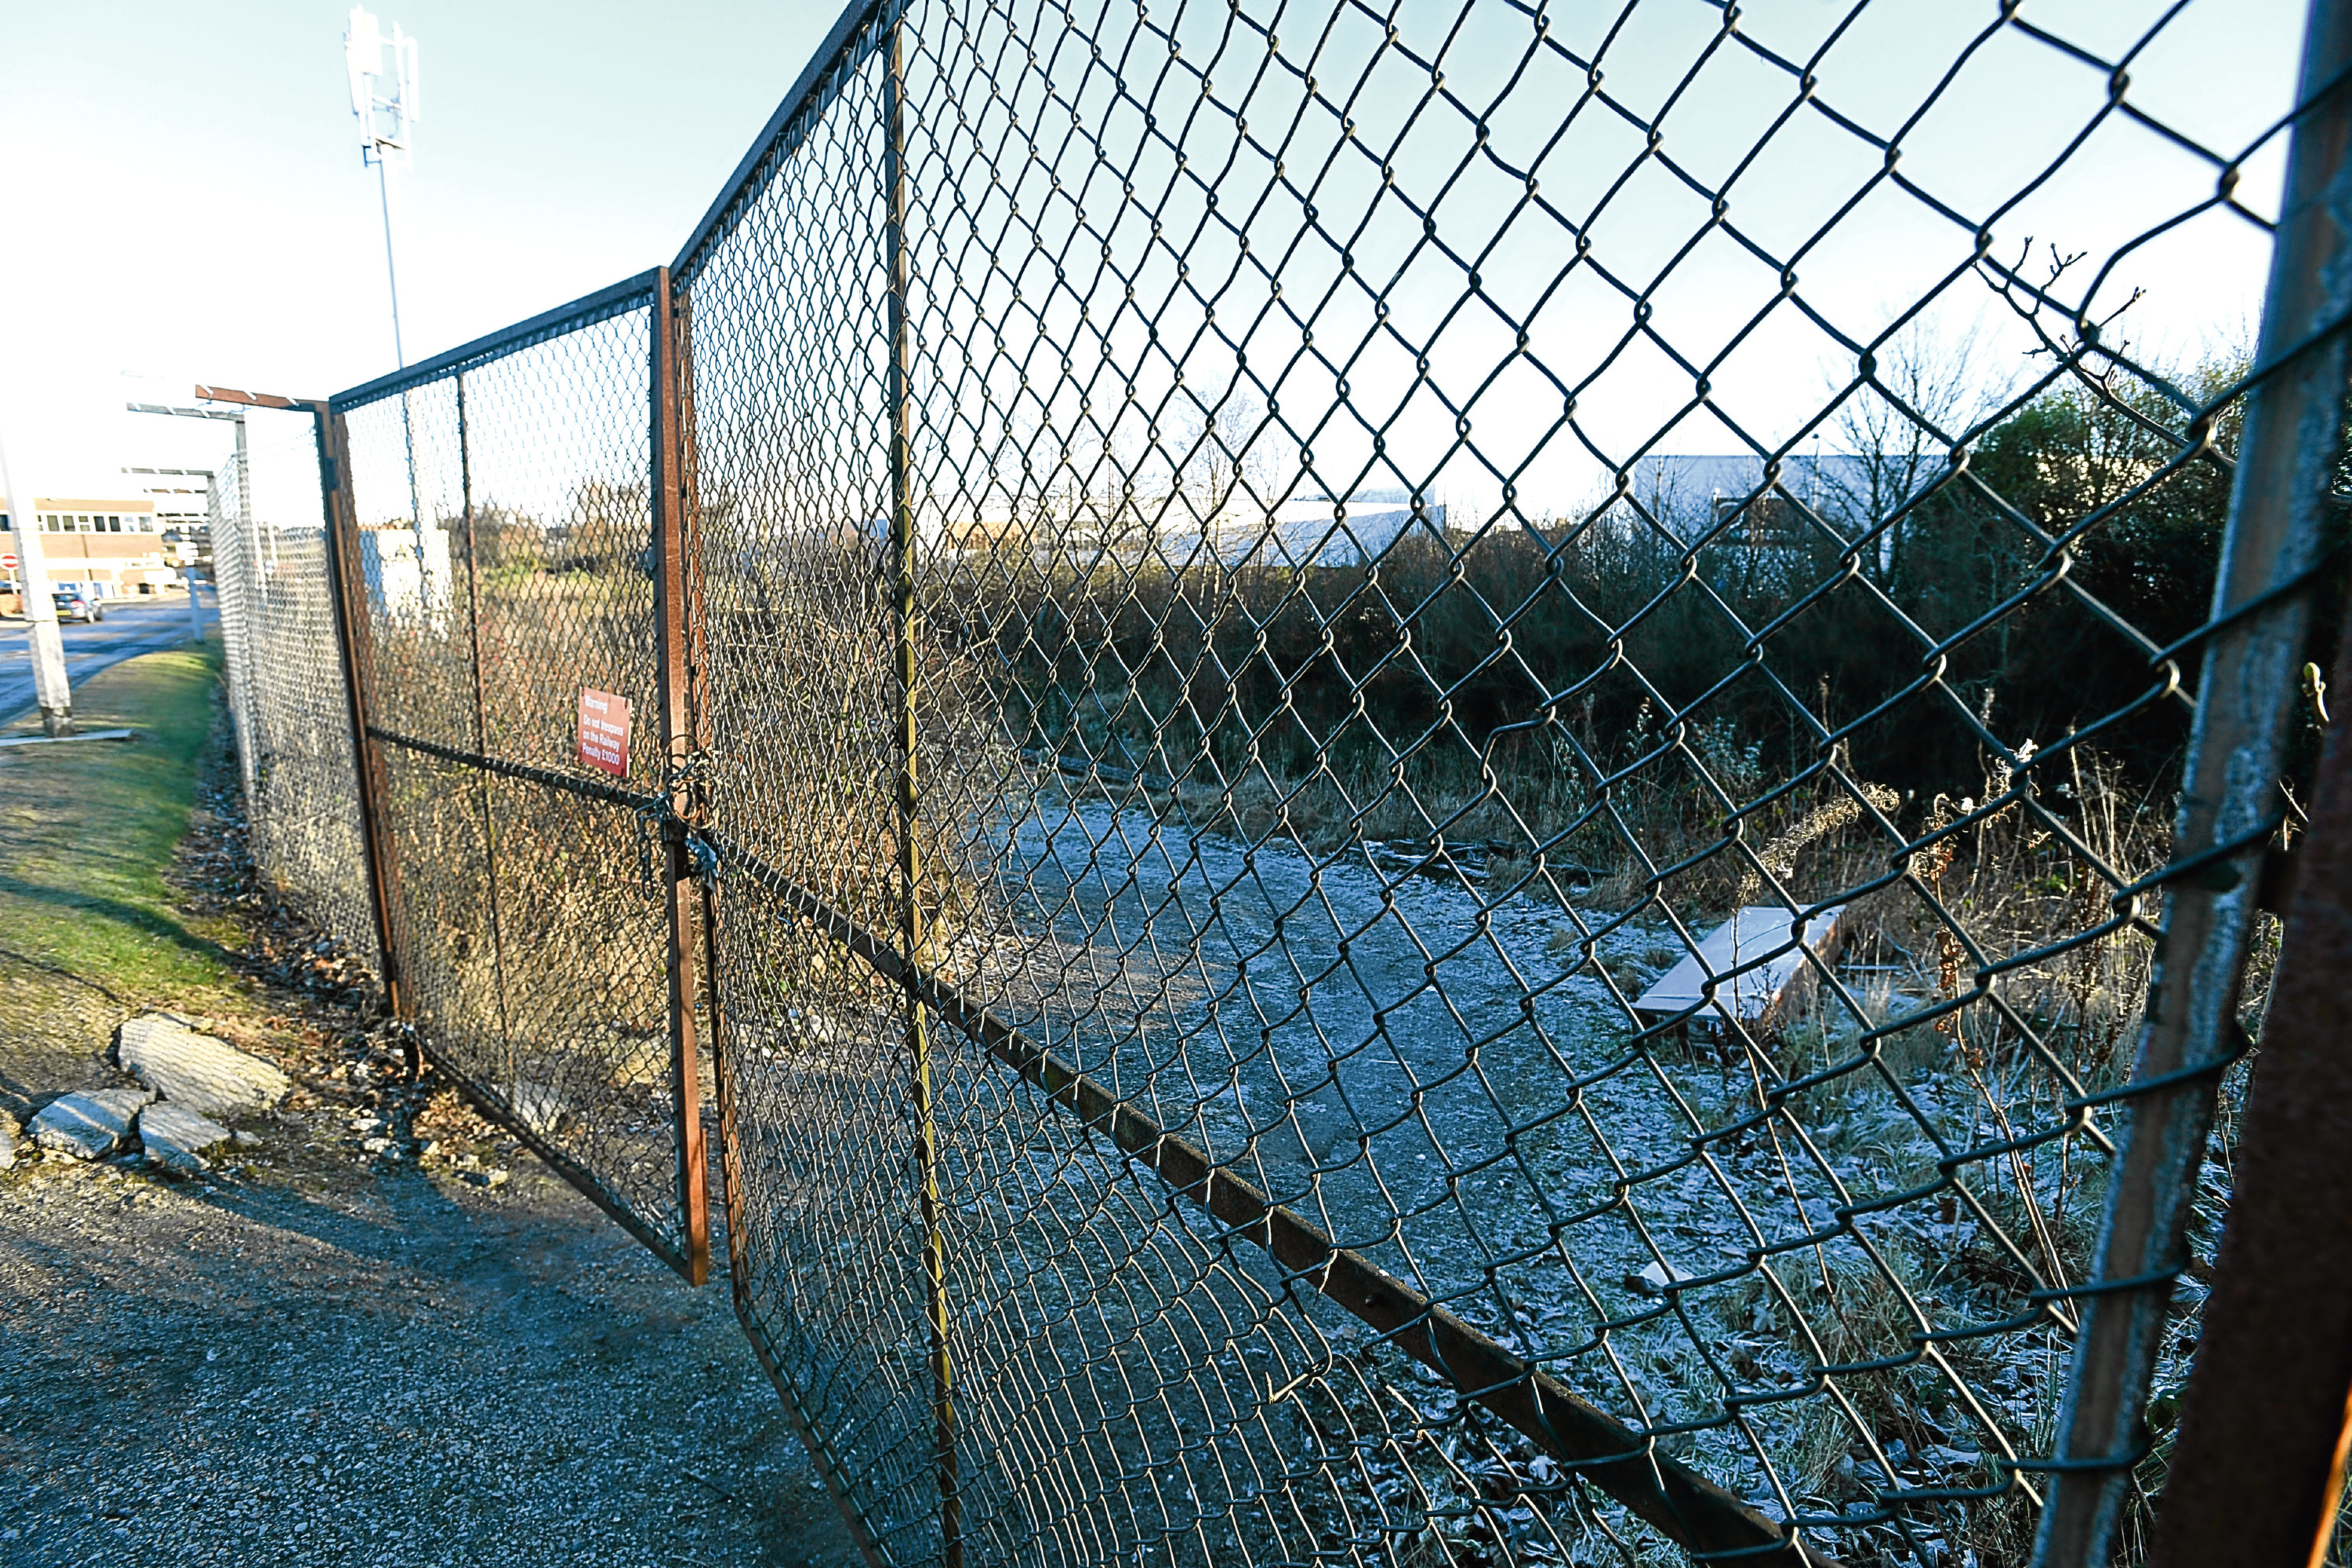 The fence barring access to the railway line near Kittybrewster Retail Park.